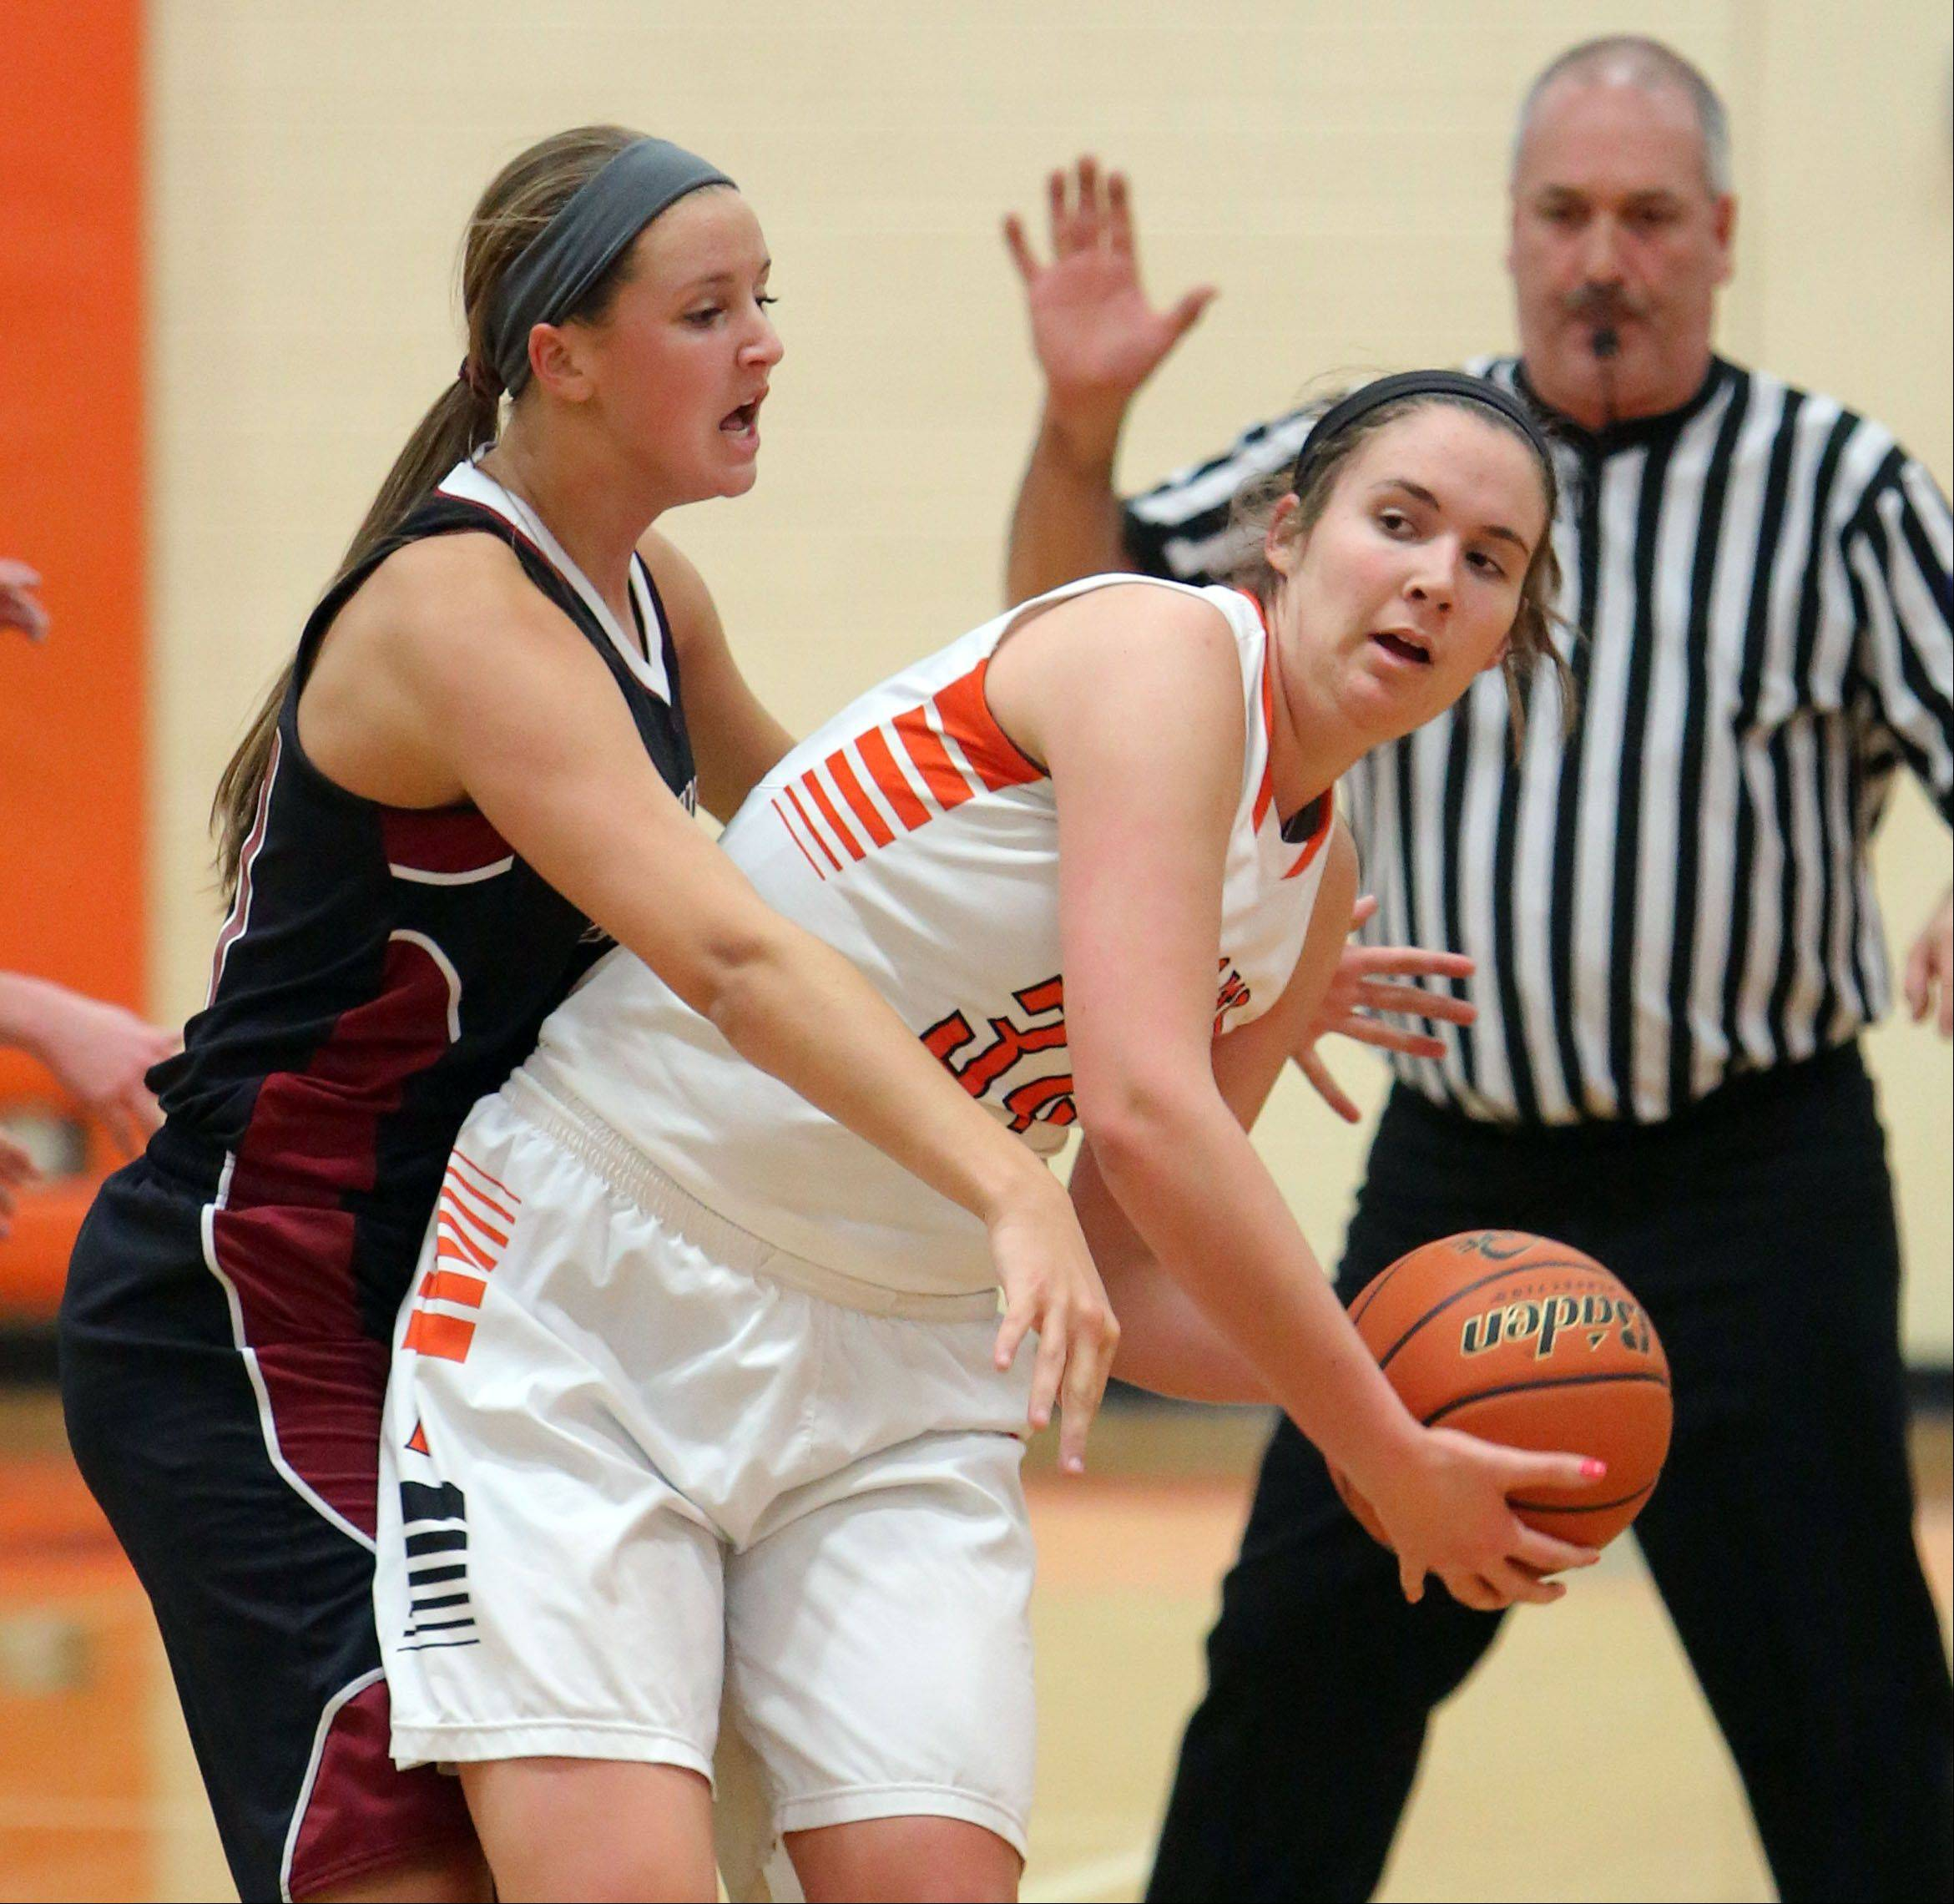 Antioch's Carly McCameron, left, applies some tough defense on Libertyville's Becky Deichl on Wednesday at Libertyville.